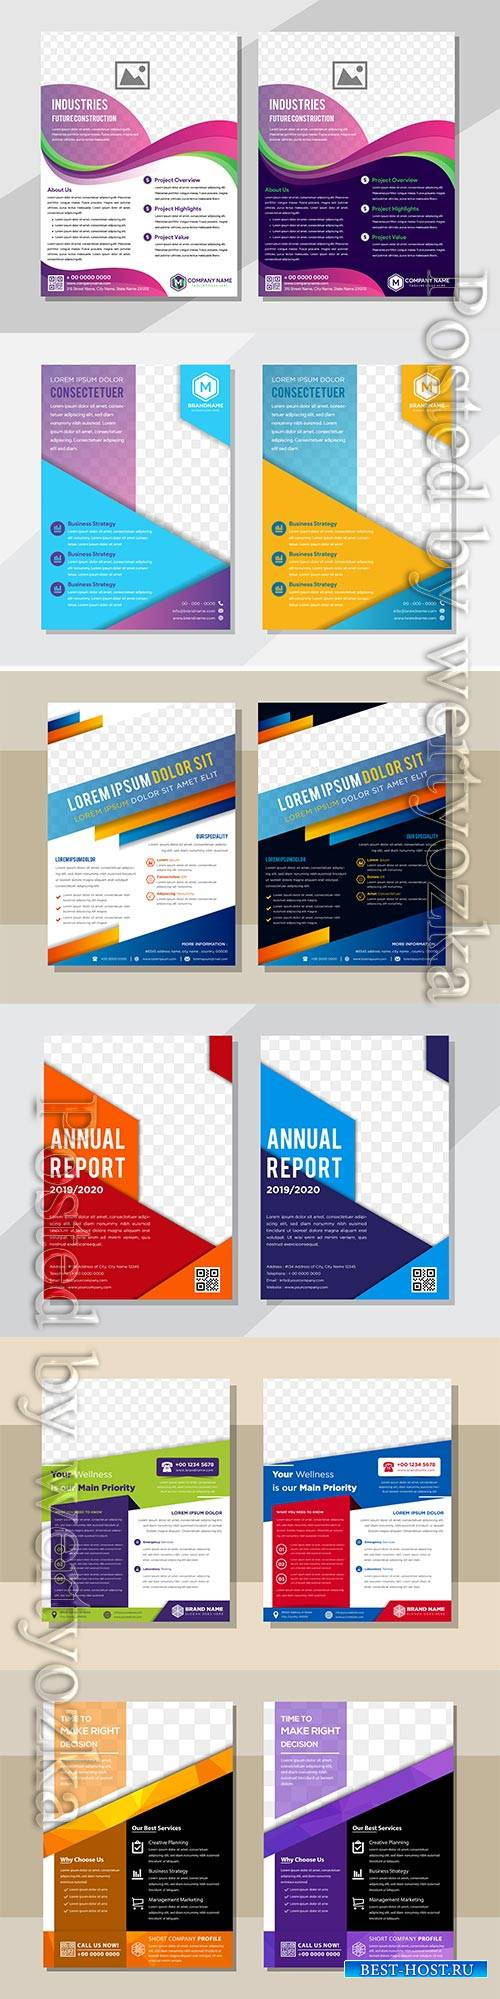 Business flyer template design, brochure vector illustration